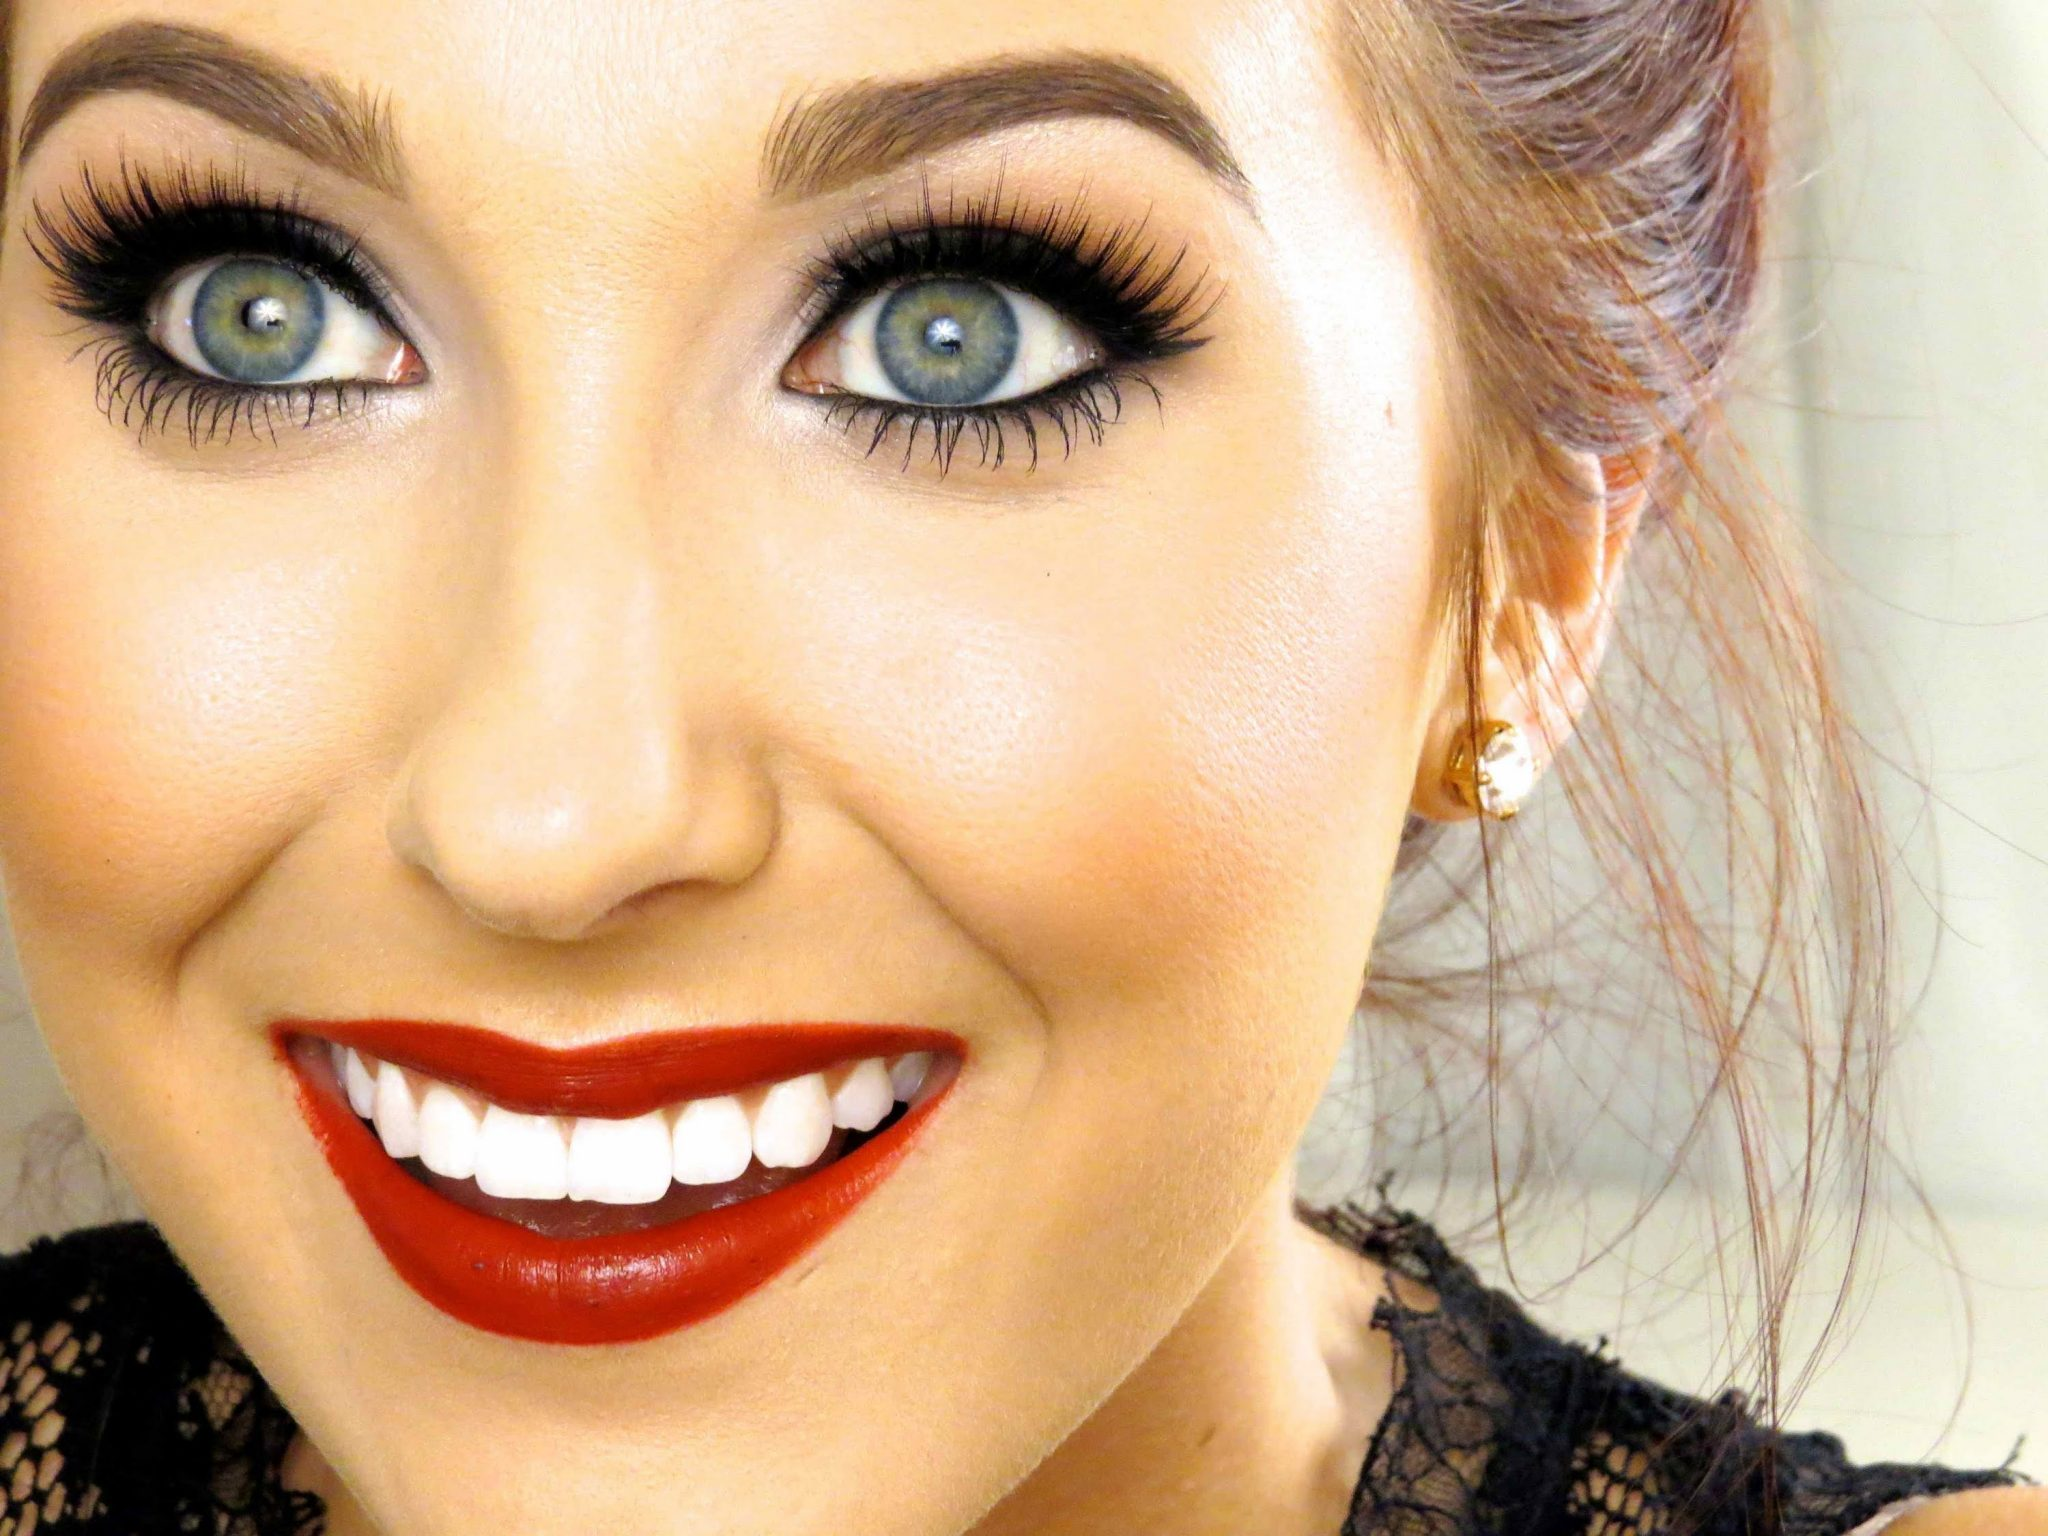 Jaclyn hill makeup tutorials choice image any tutorial examples classic red lip makeup tutorial jaclyn hill skin beauty blog baditri choice image baditri Image collections